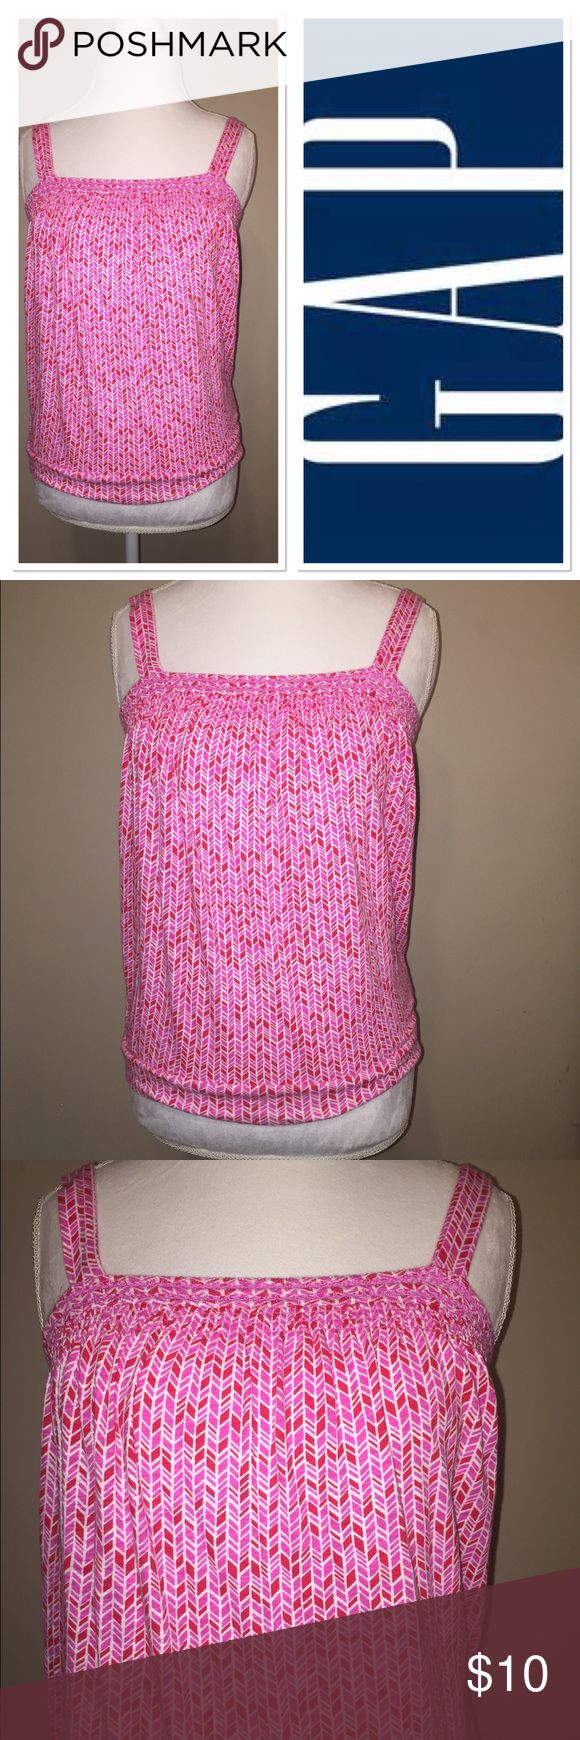 Gap pink and red tank top Very cute pink and red diamond print take with elastic bust in perfect condition GAP Tops Tank Tops